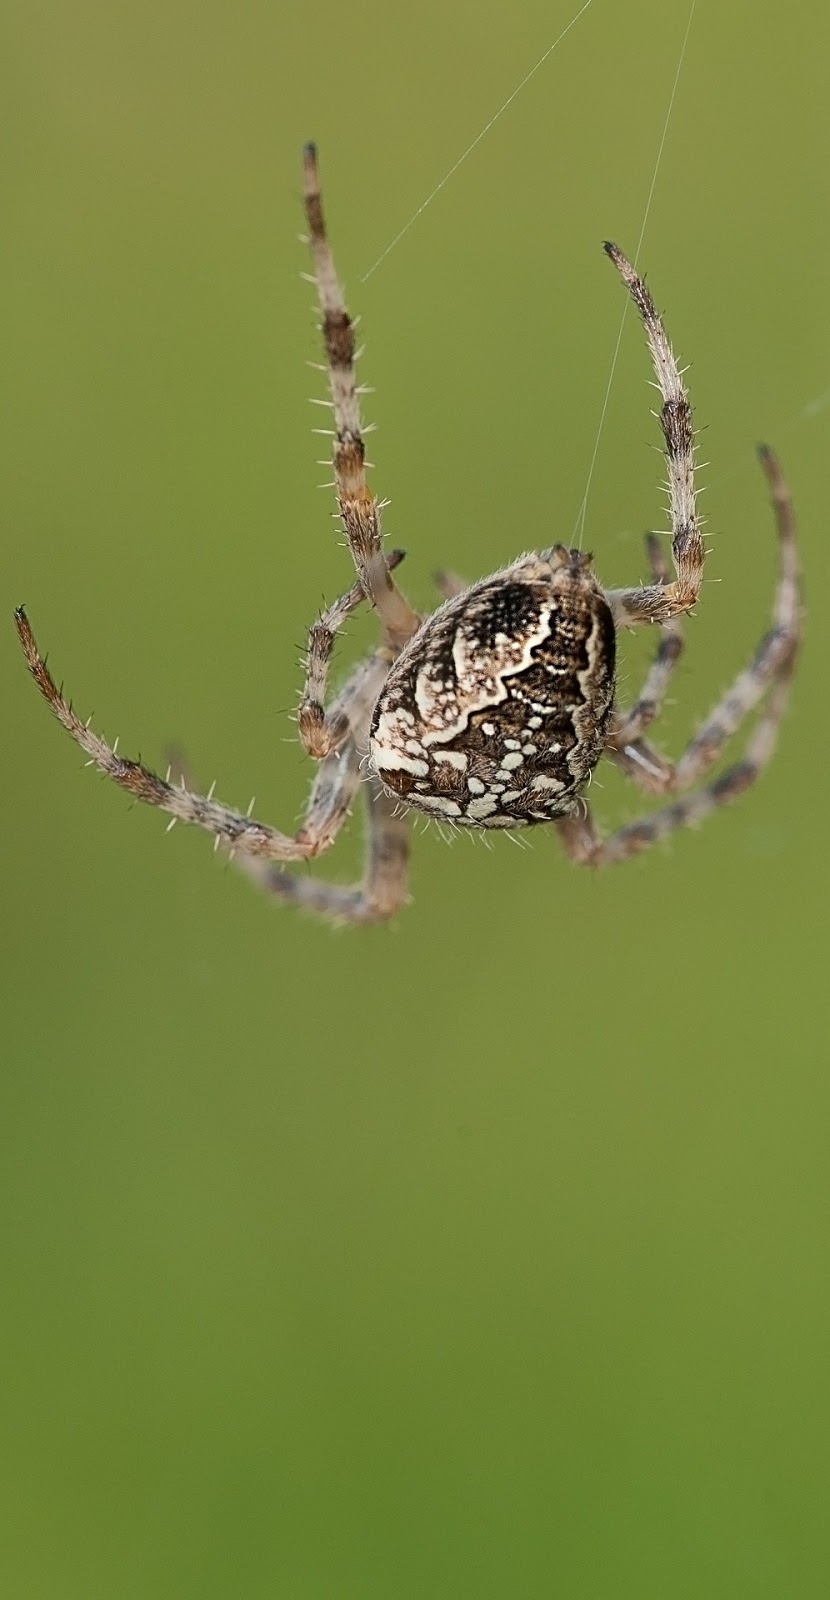 Picture of a spider hanging from it's web.